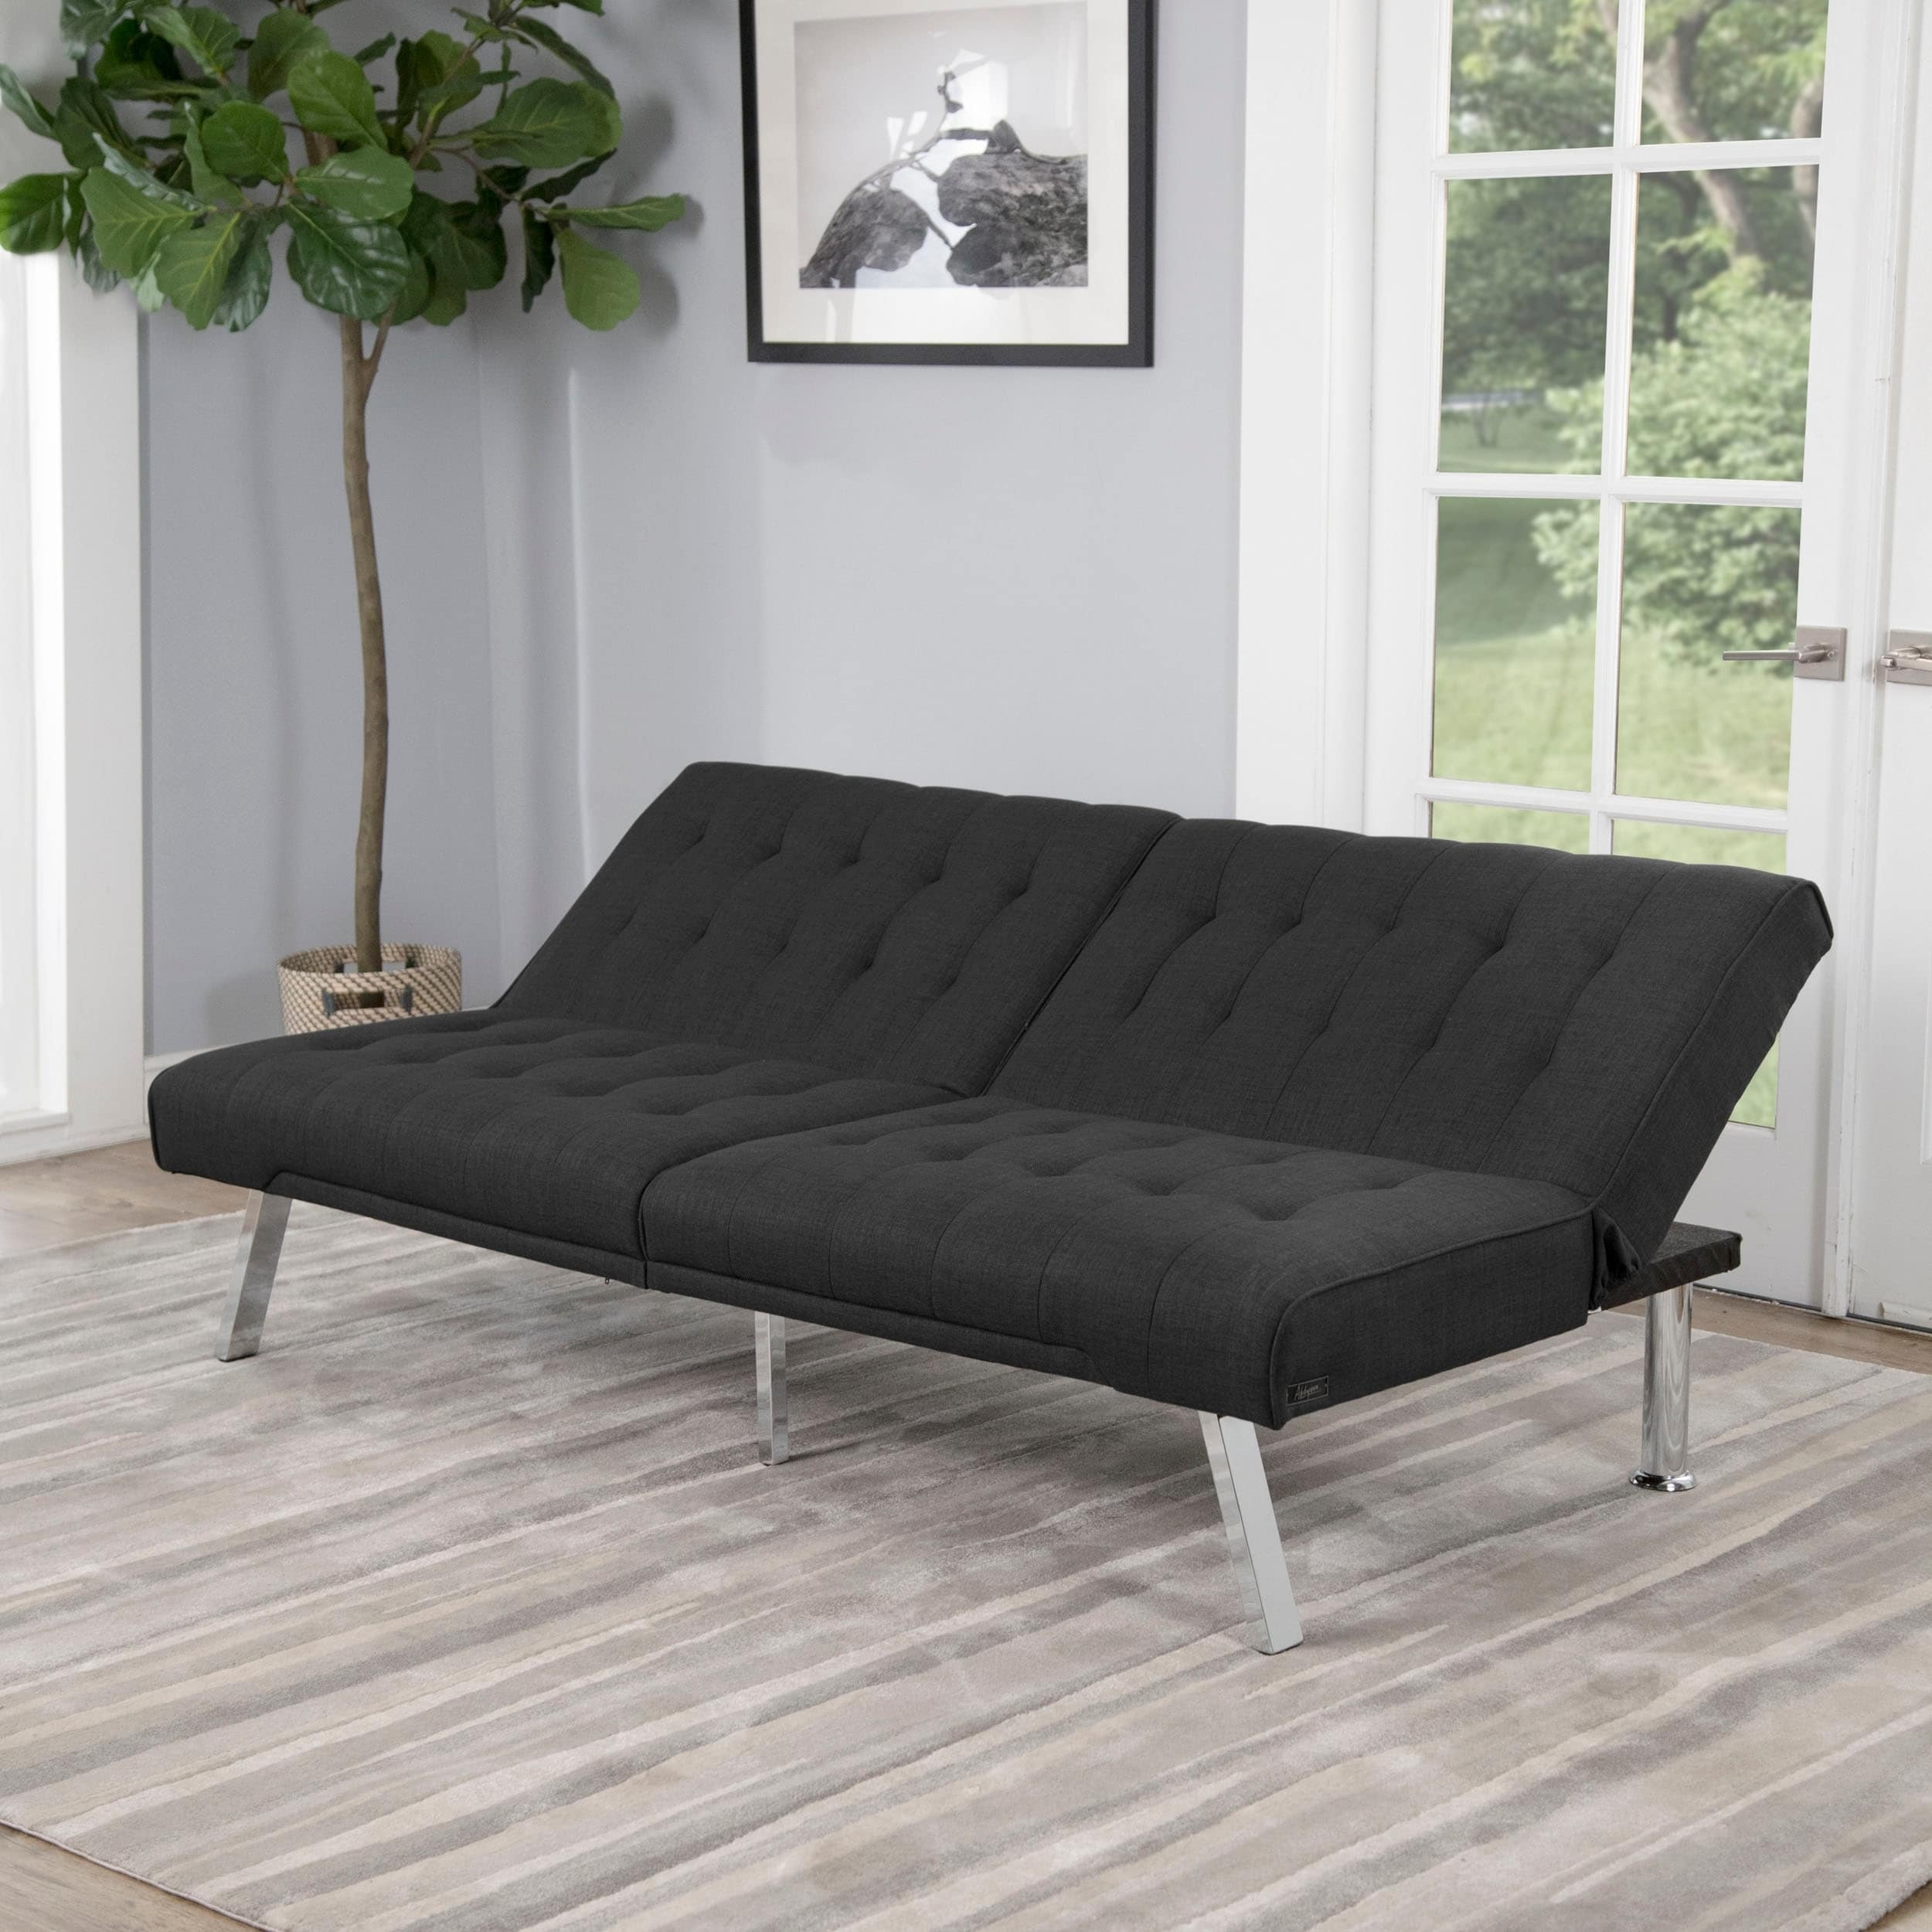 Sensational Abbyson Clayton Grey Fabric Futon Sofa Bed Home Remodeling Inspirations Gresiscottssportslandcom